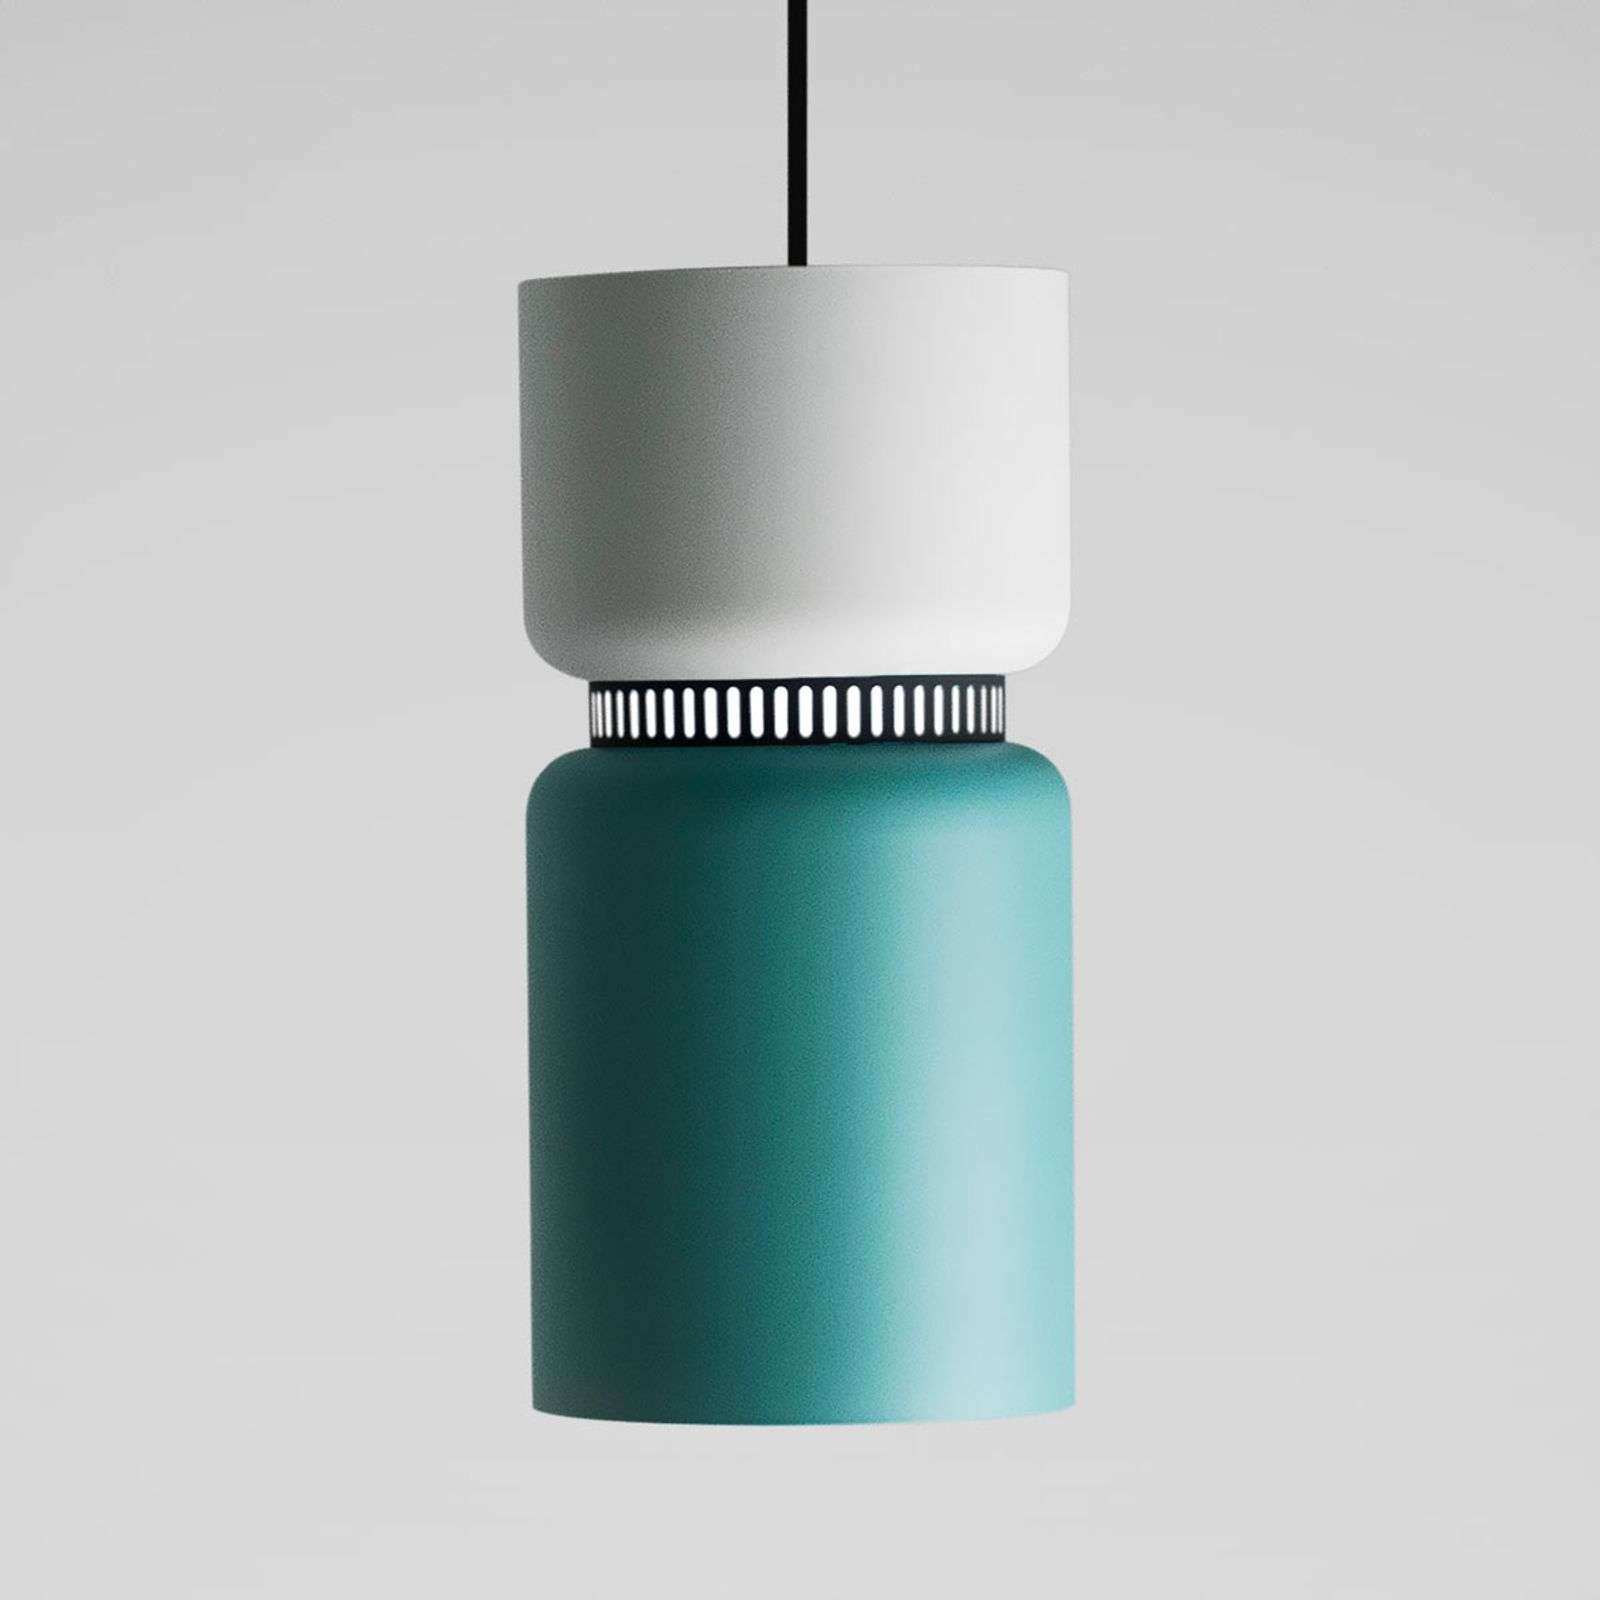 Suspension LED Aspen S blanc-turquoise 17 cm